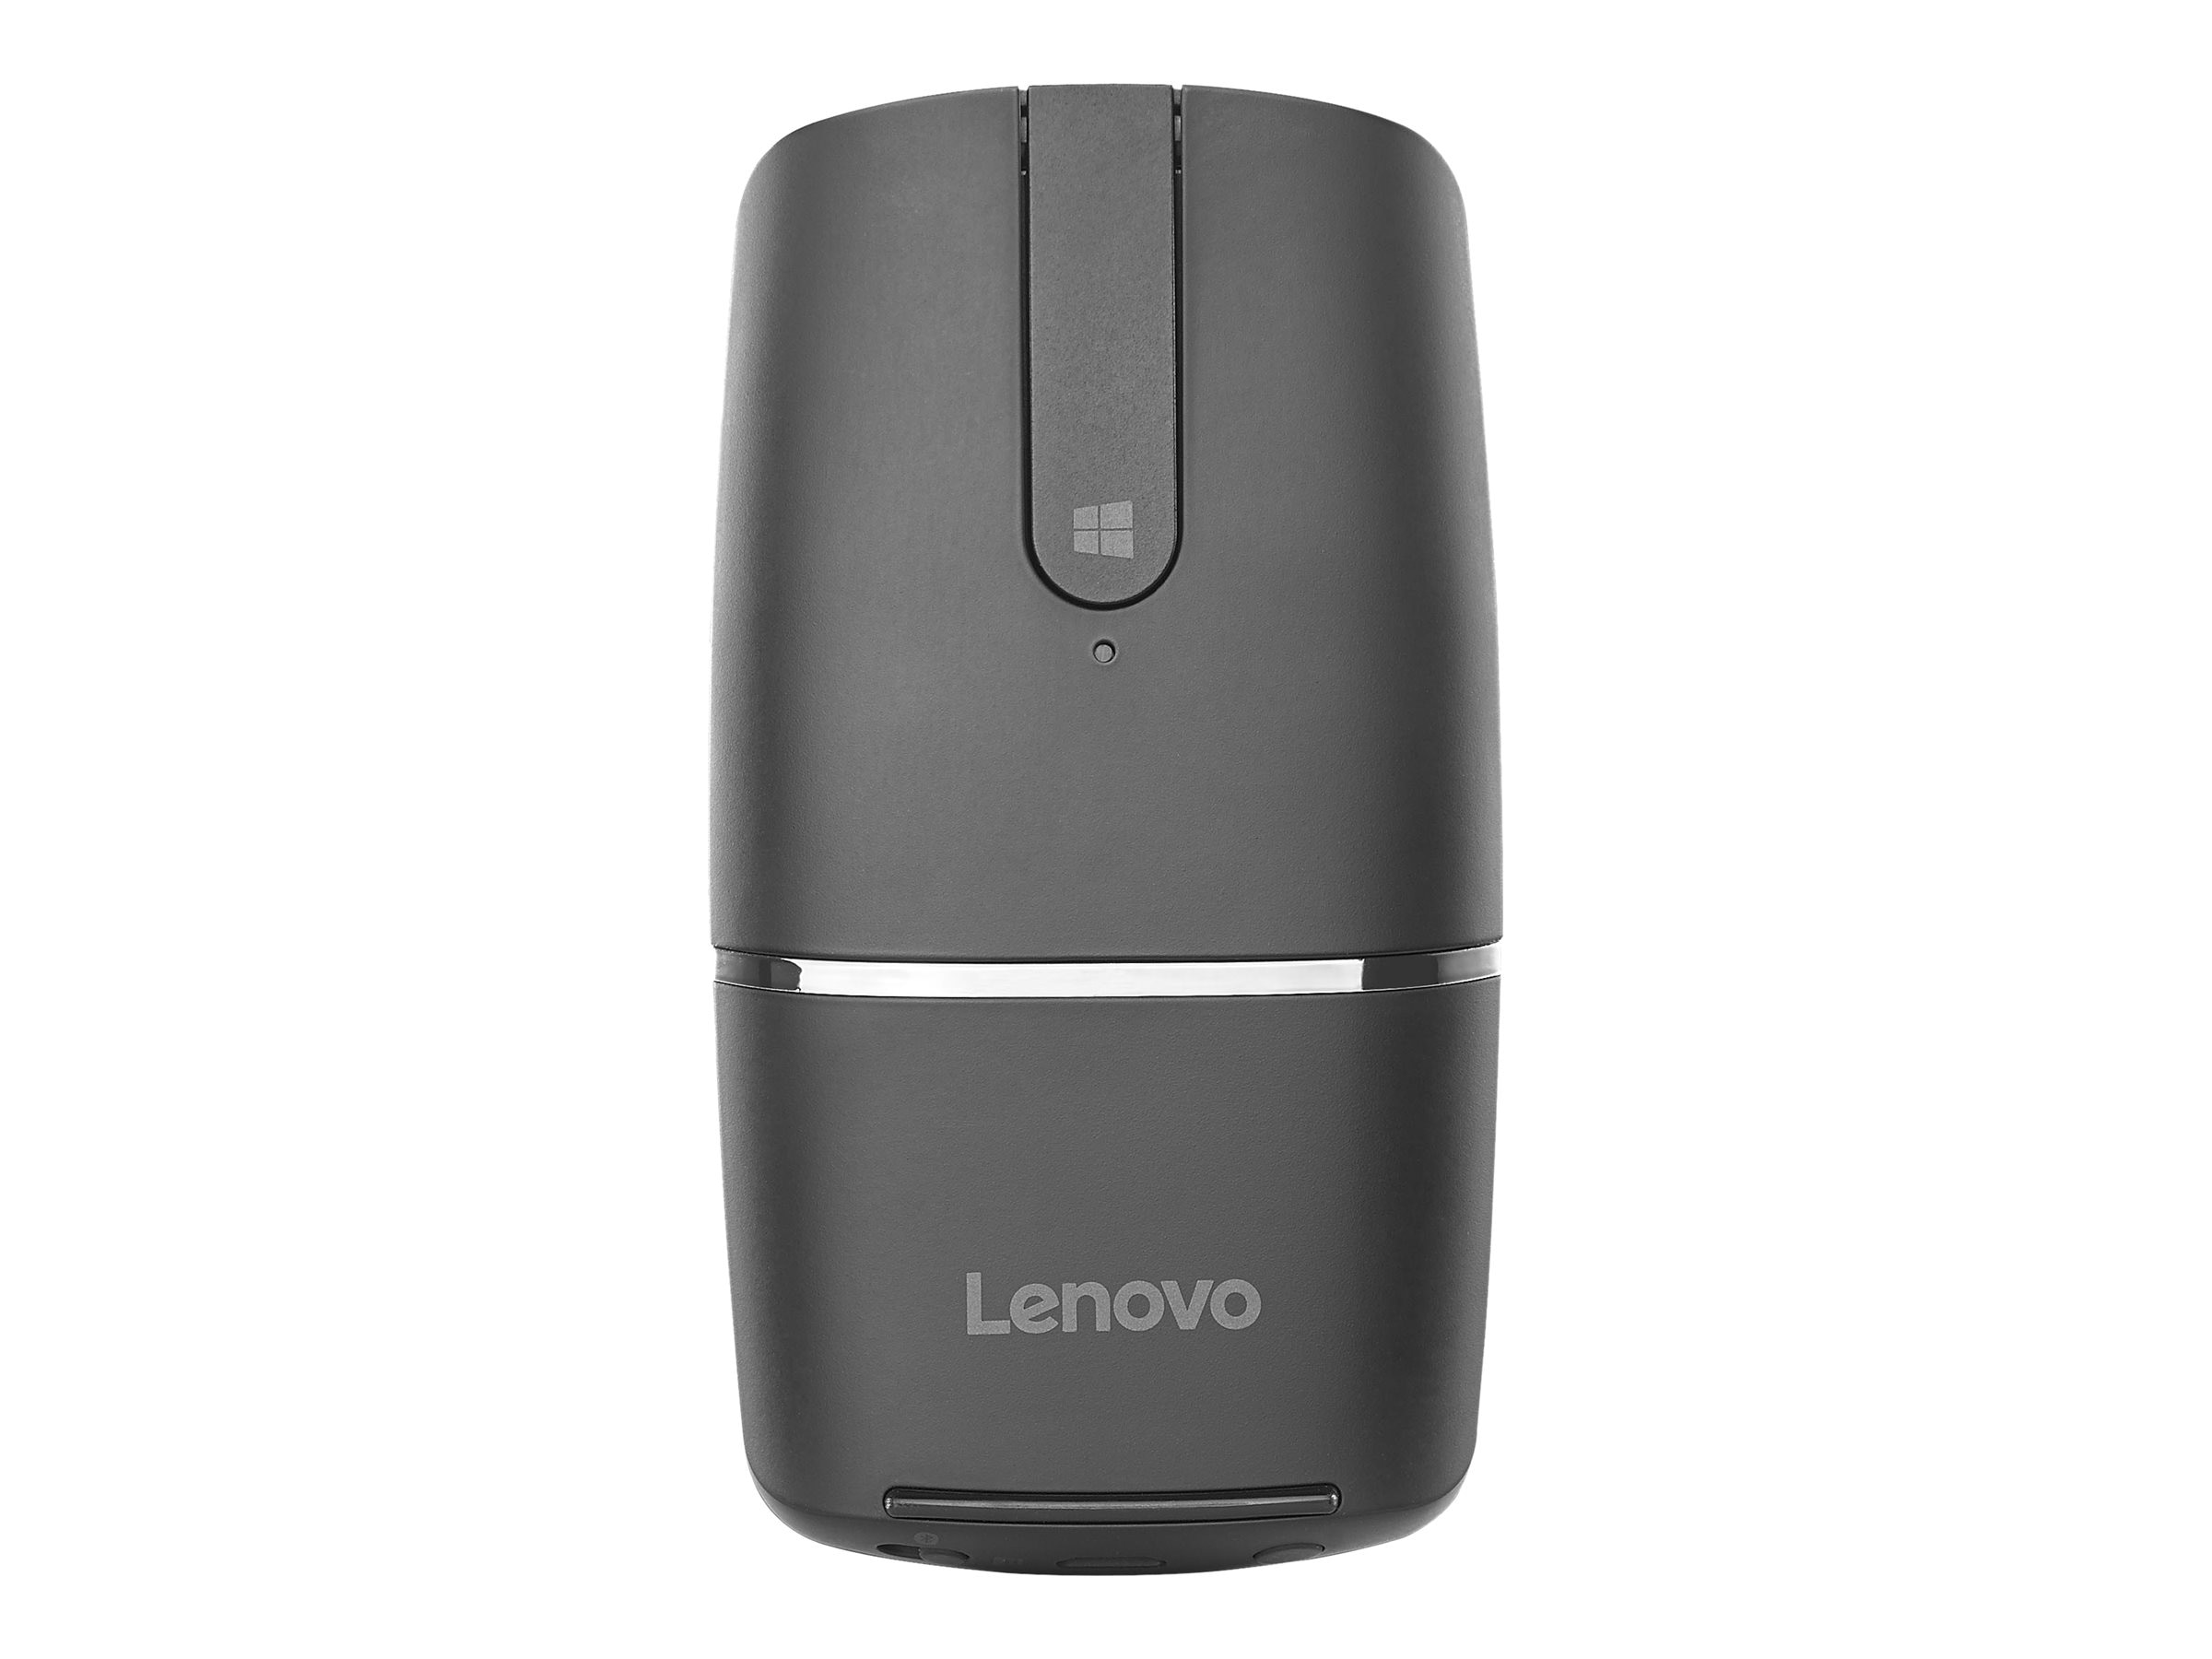 Lenovo YOGA Mouse, Wireless 2.4GHz Bluetooth 4.0, Black, GX30K69565